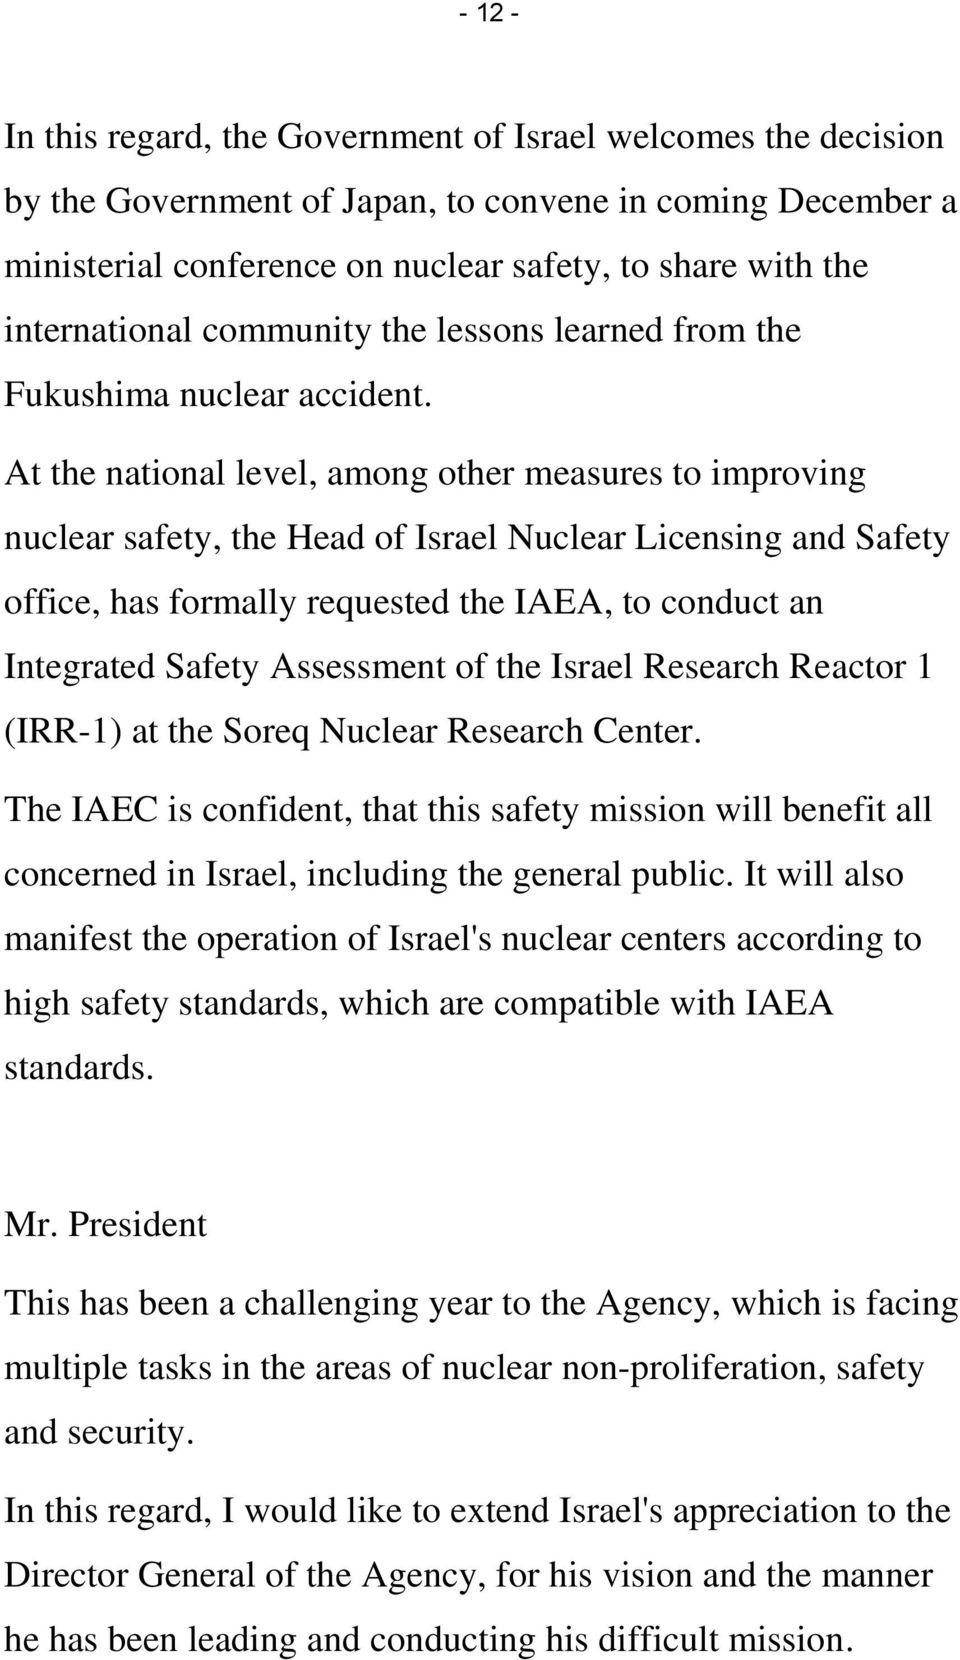 At the national level, among other measures to improving nuclear safety, the Head of Israel Nuclear Licensing and Safety office, has formally requested the IAEA, to conduct an Integrated Safety